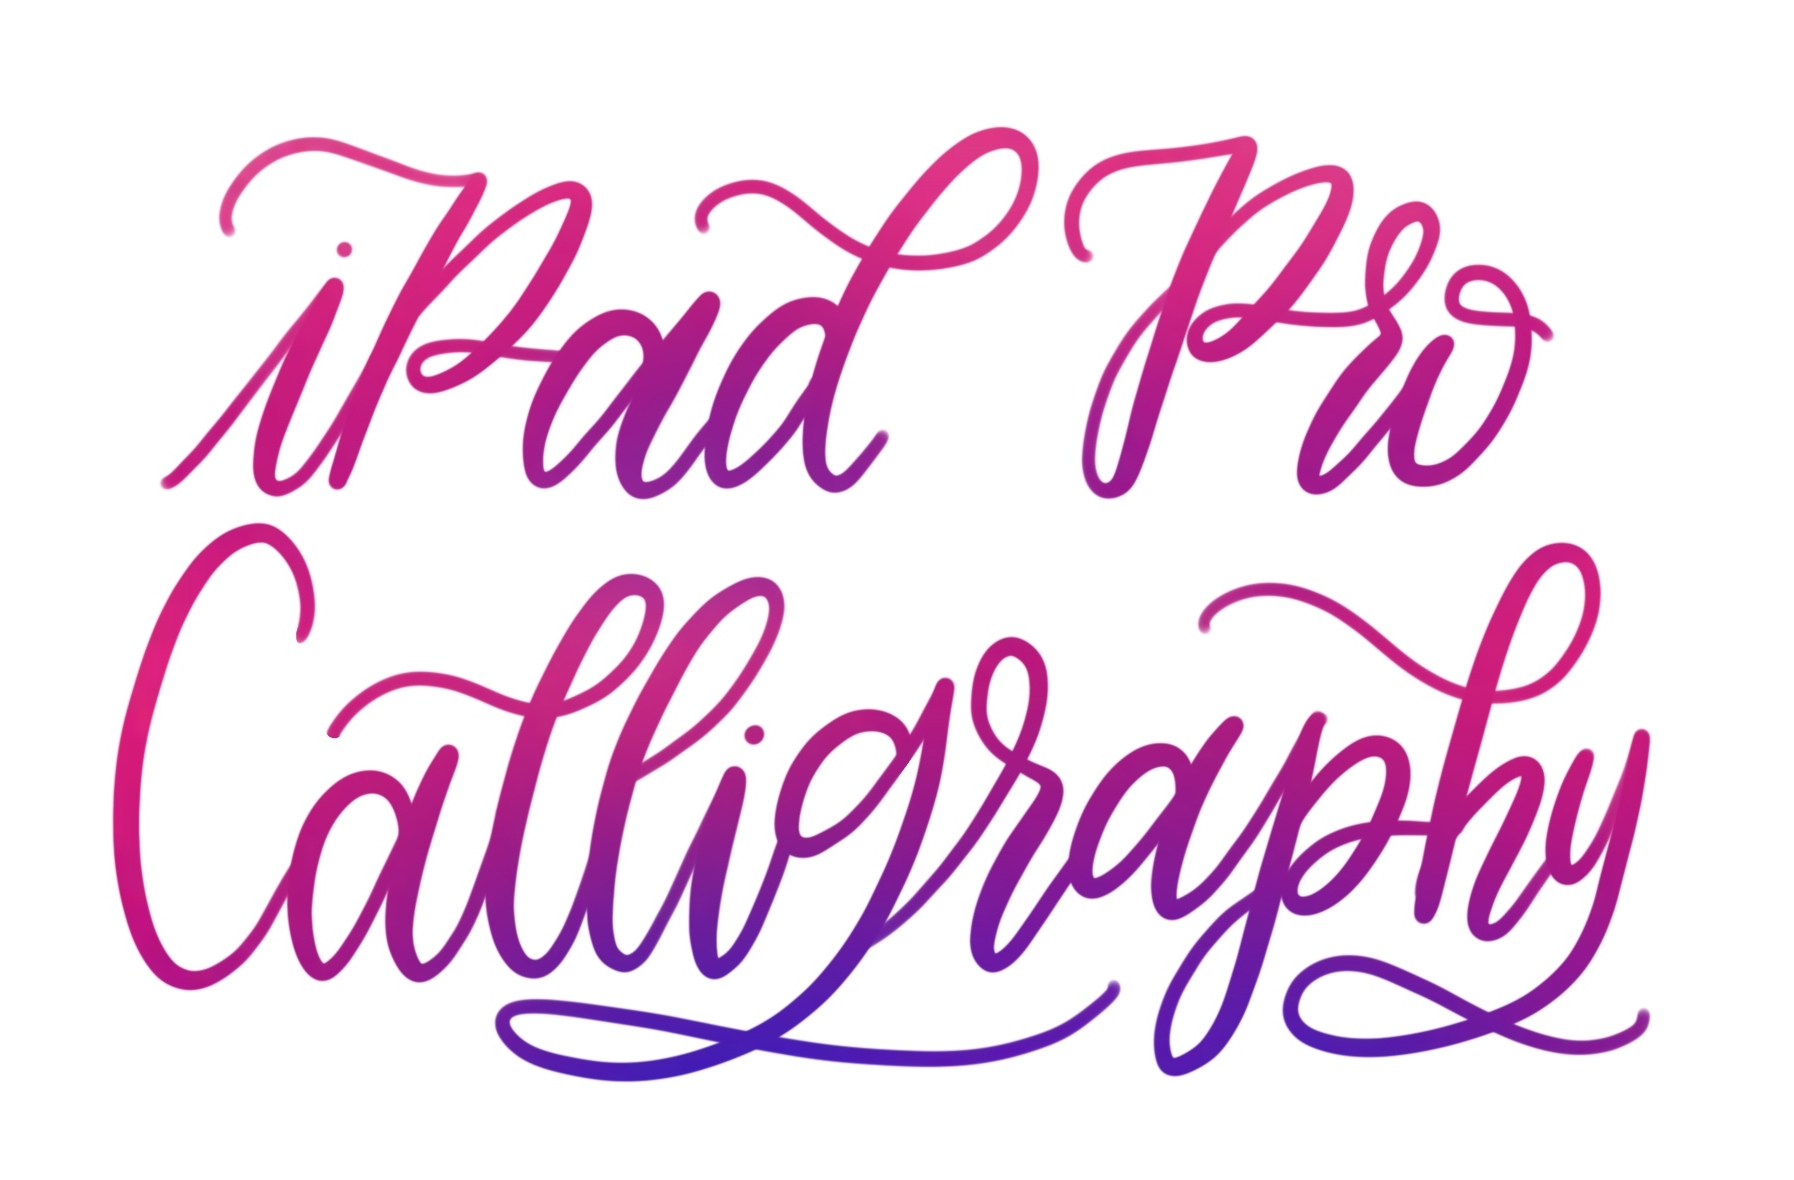 Get the Most out of Your IPad Pro and Procreate by Learning to Do Calligraphy Lettering : In New York, New York (1)